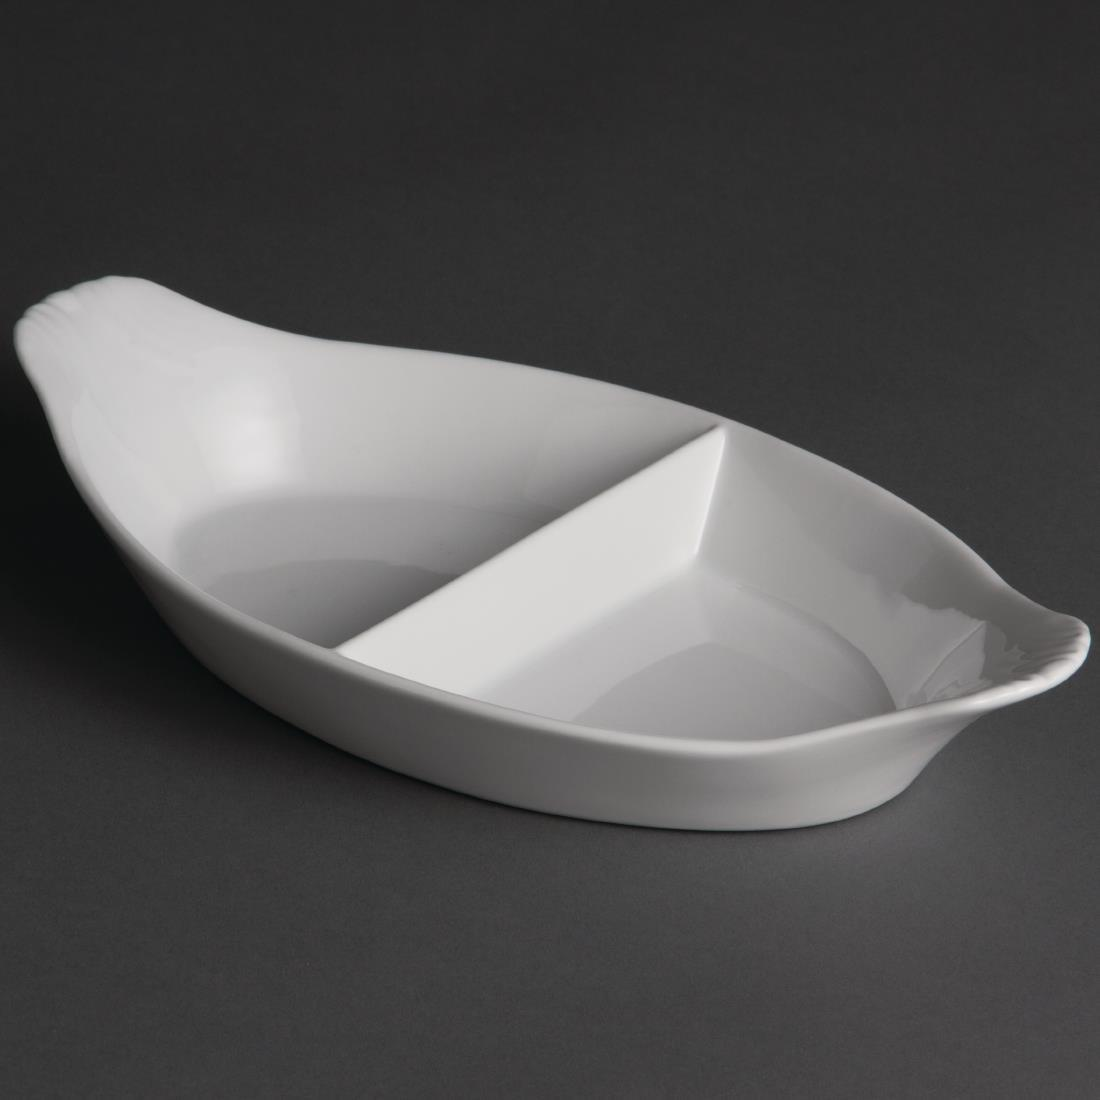 Y100 - Olympia Divided Oval Eared Dish